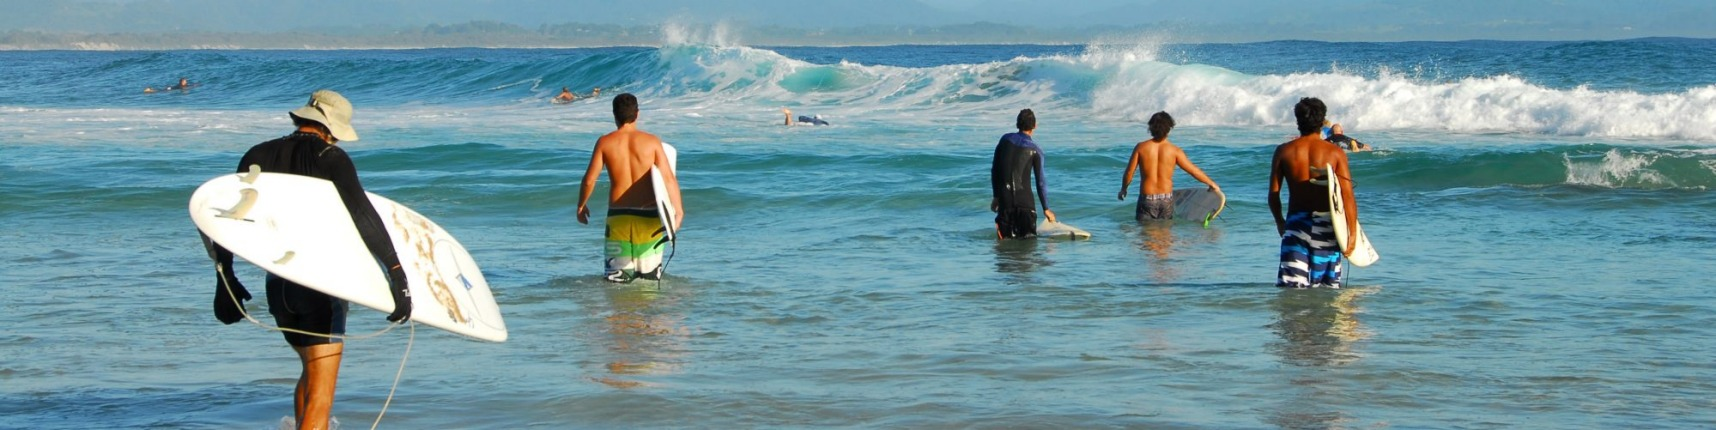 Surfers at Byron Bay.